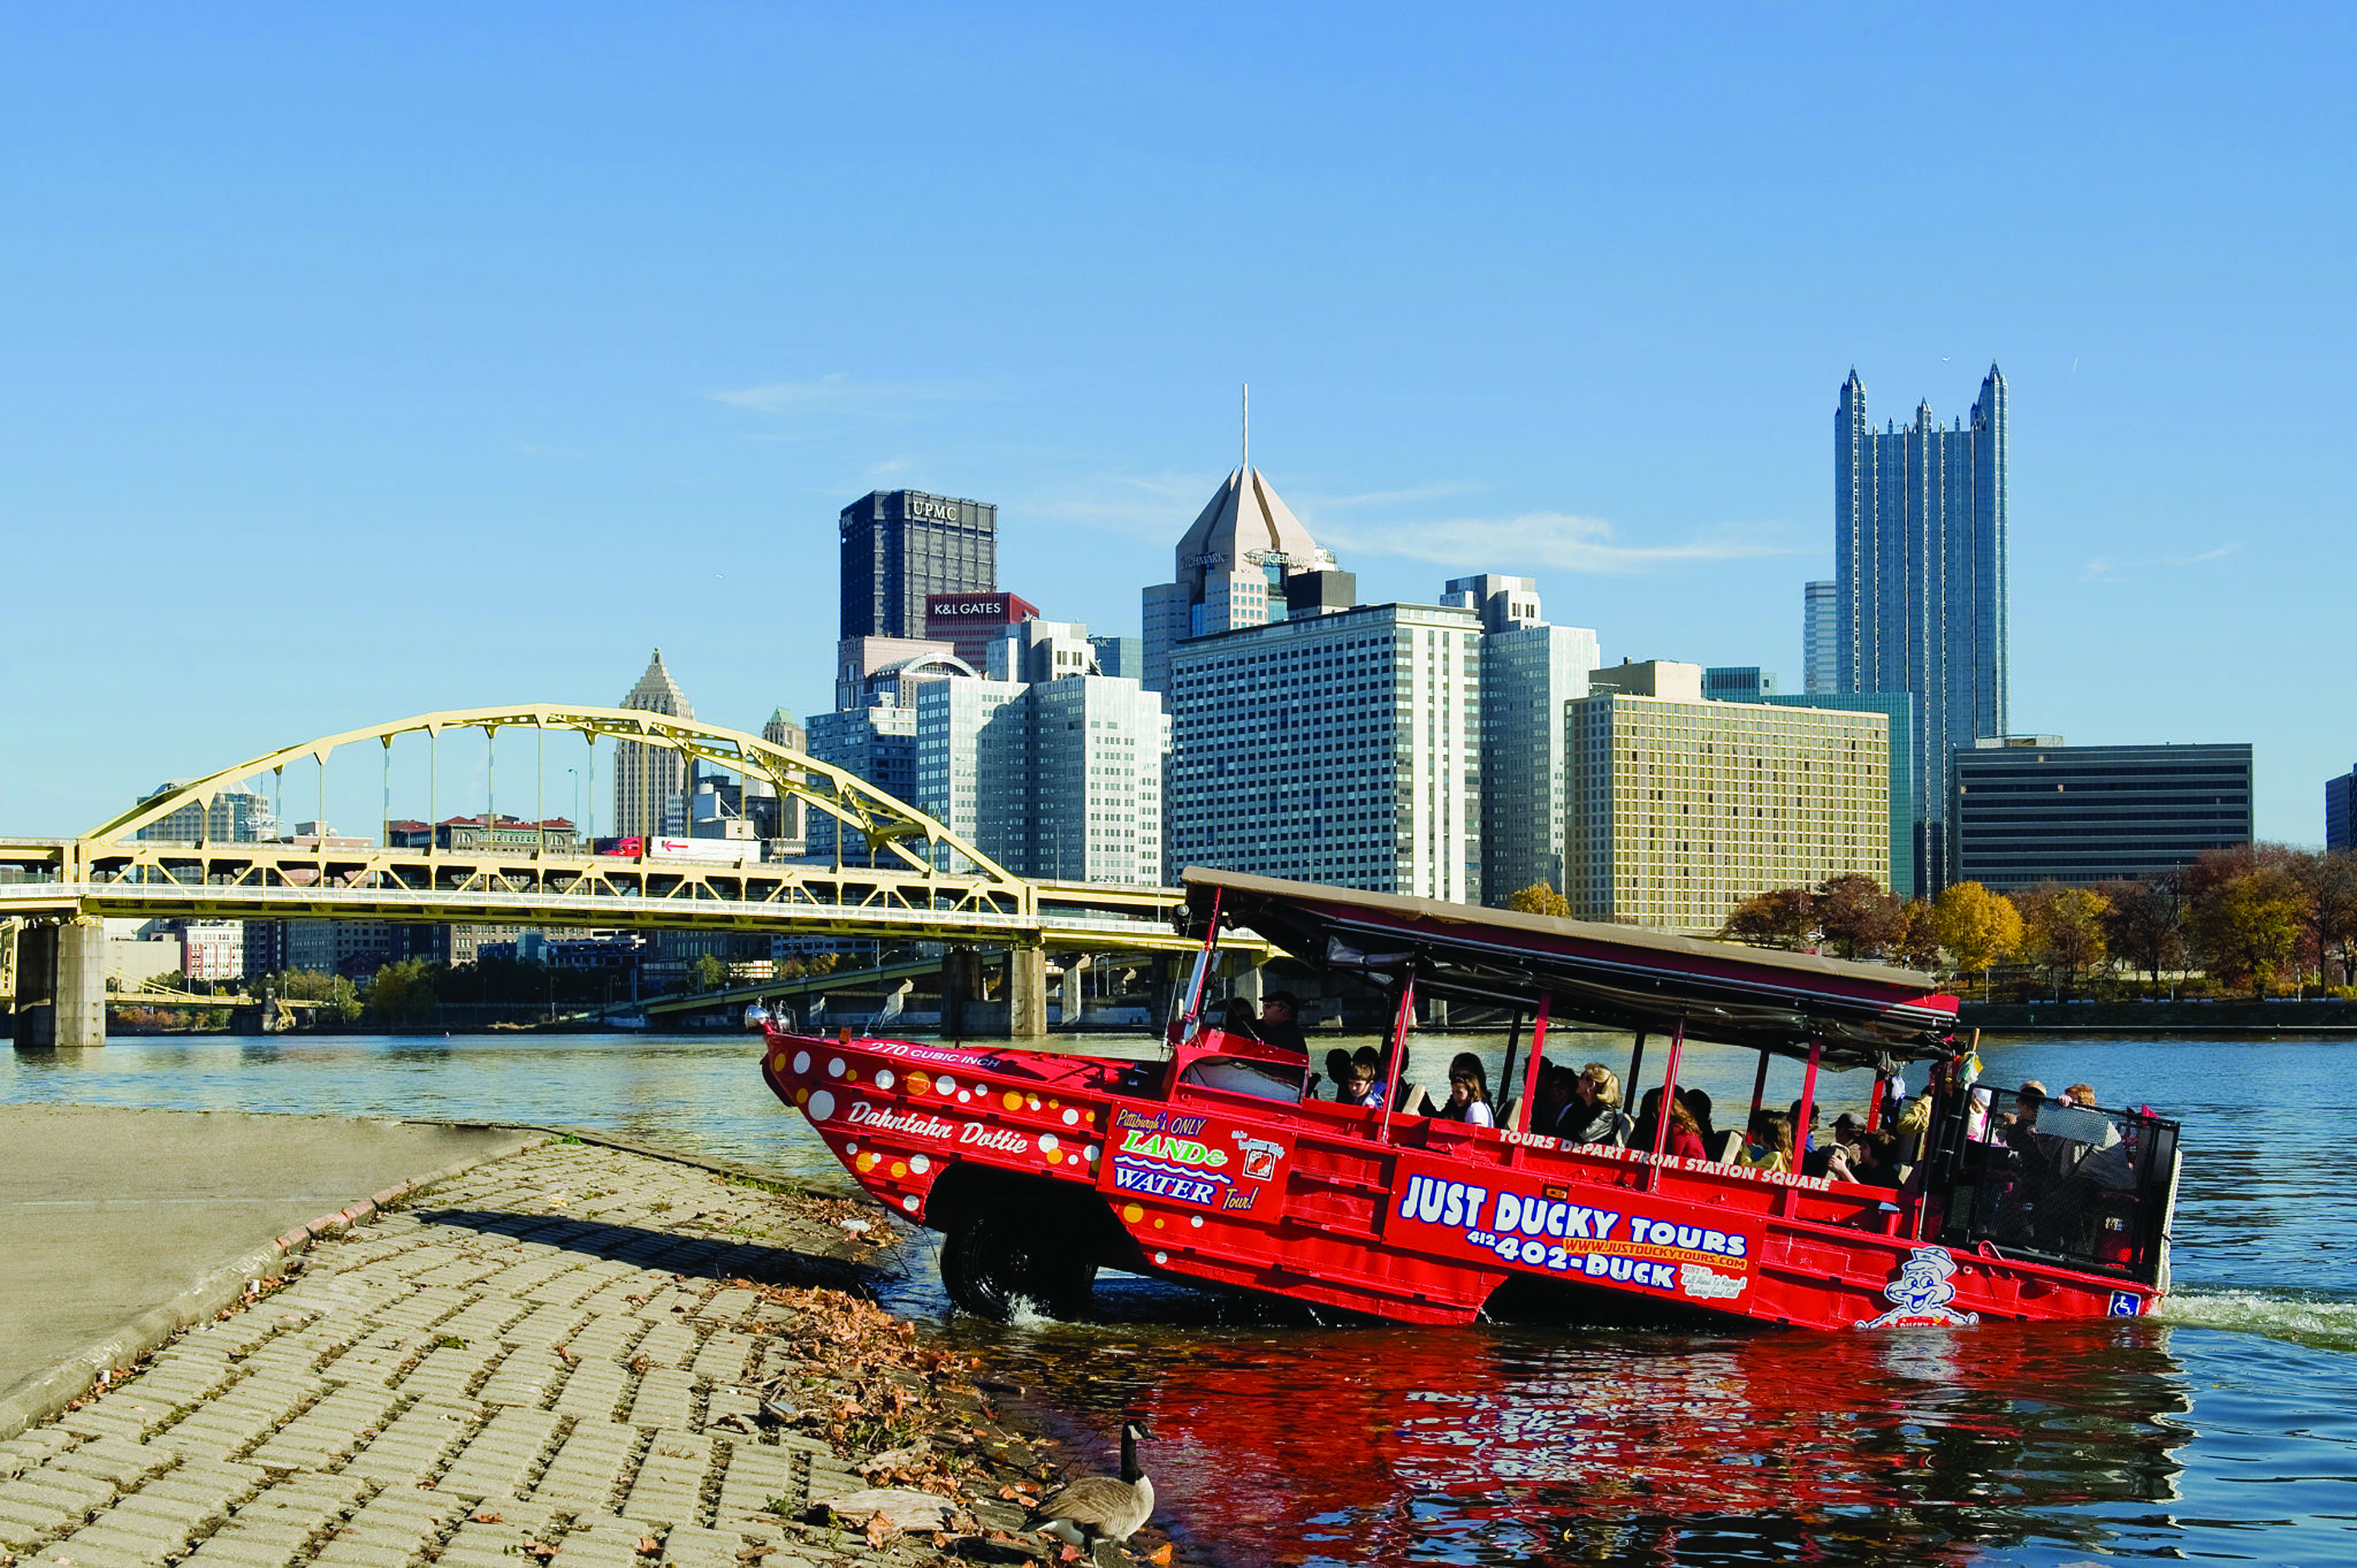 'Just Ducky' river tours pulls plug in Pa. city: Here's why